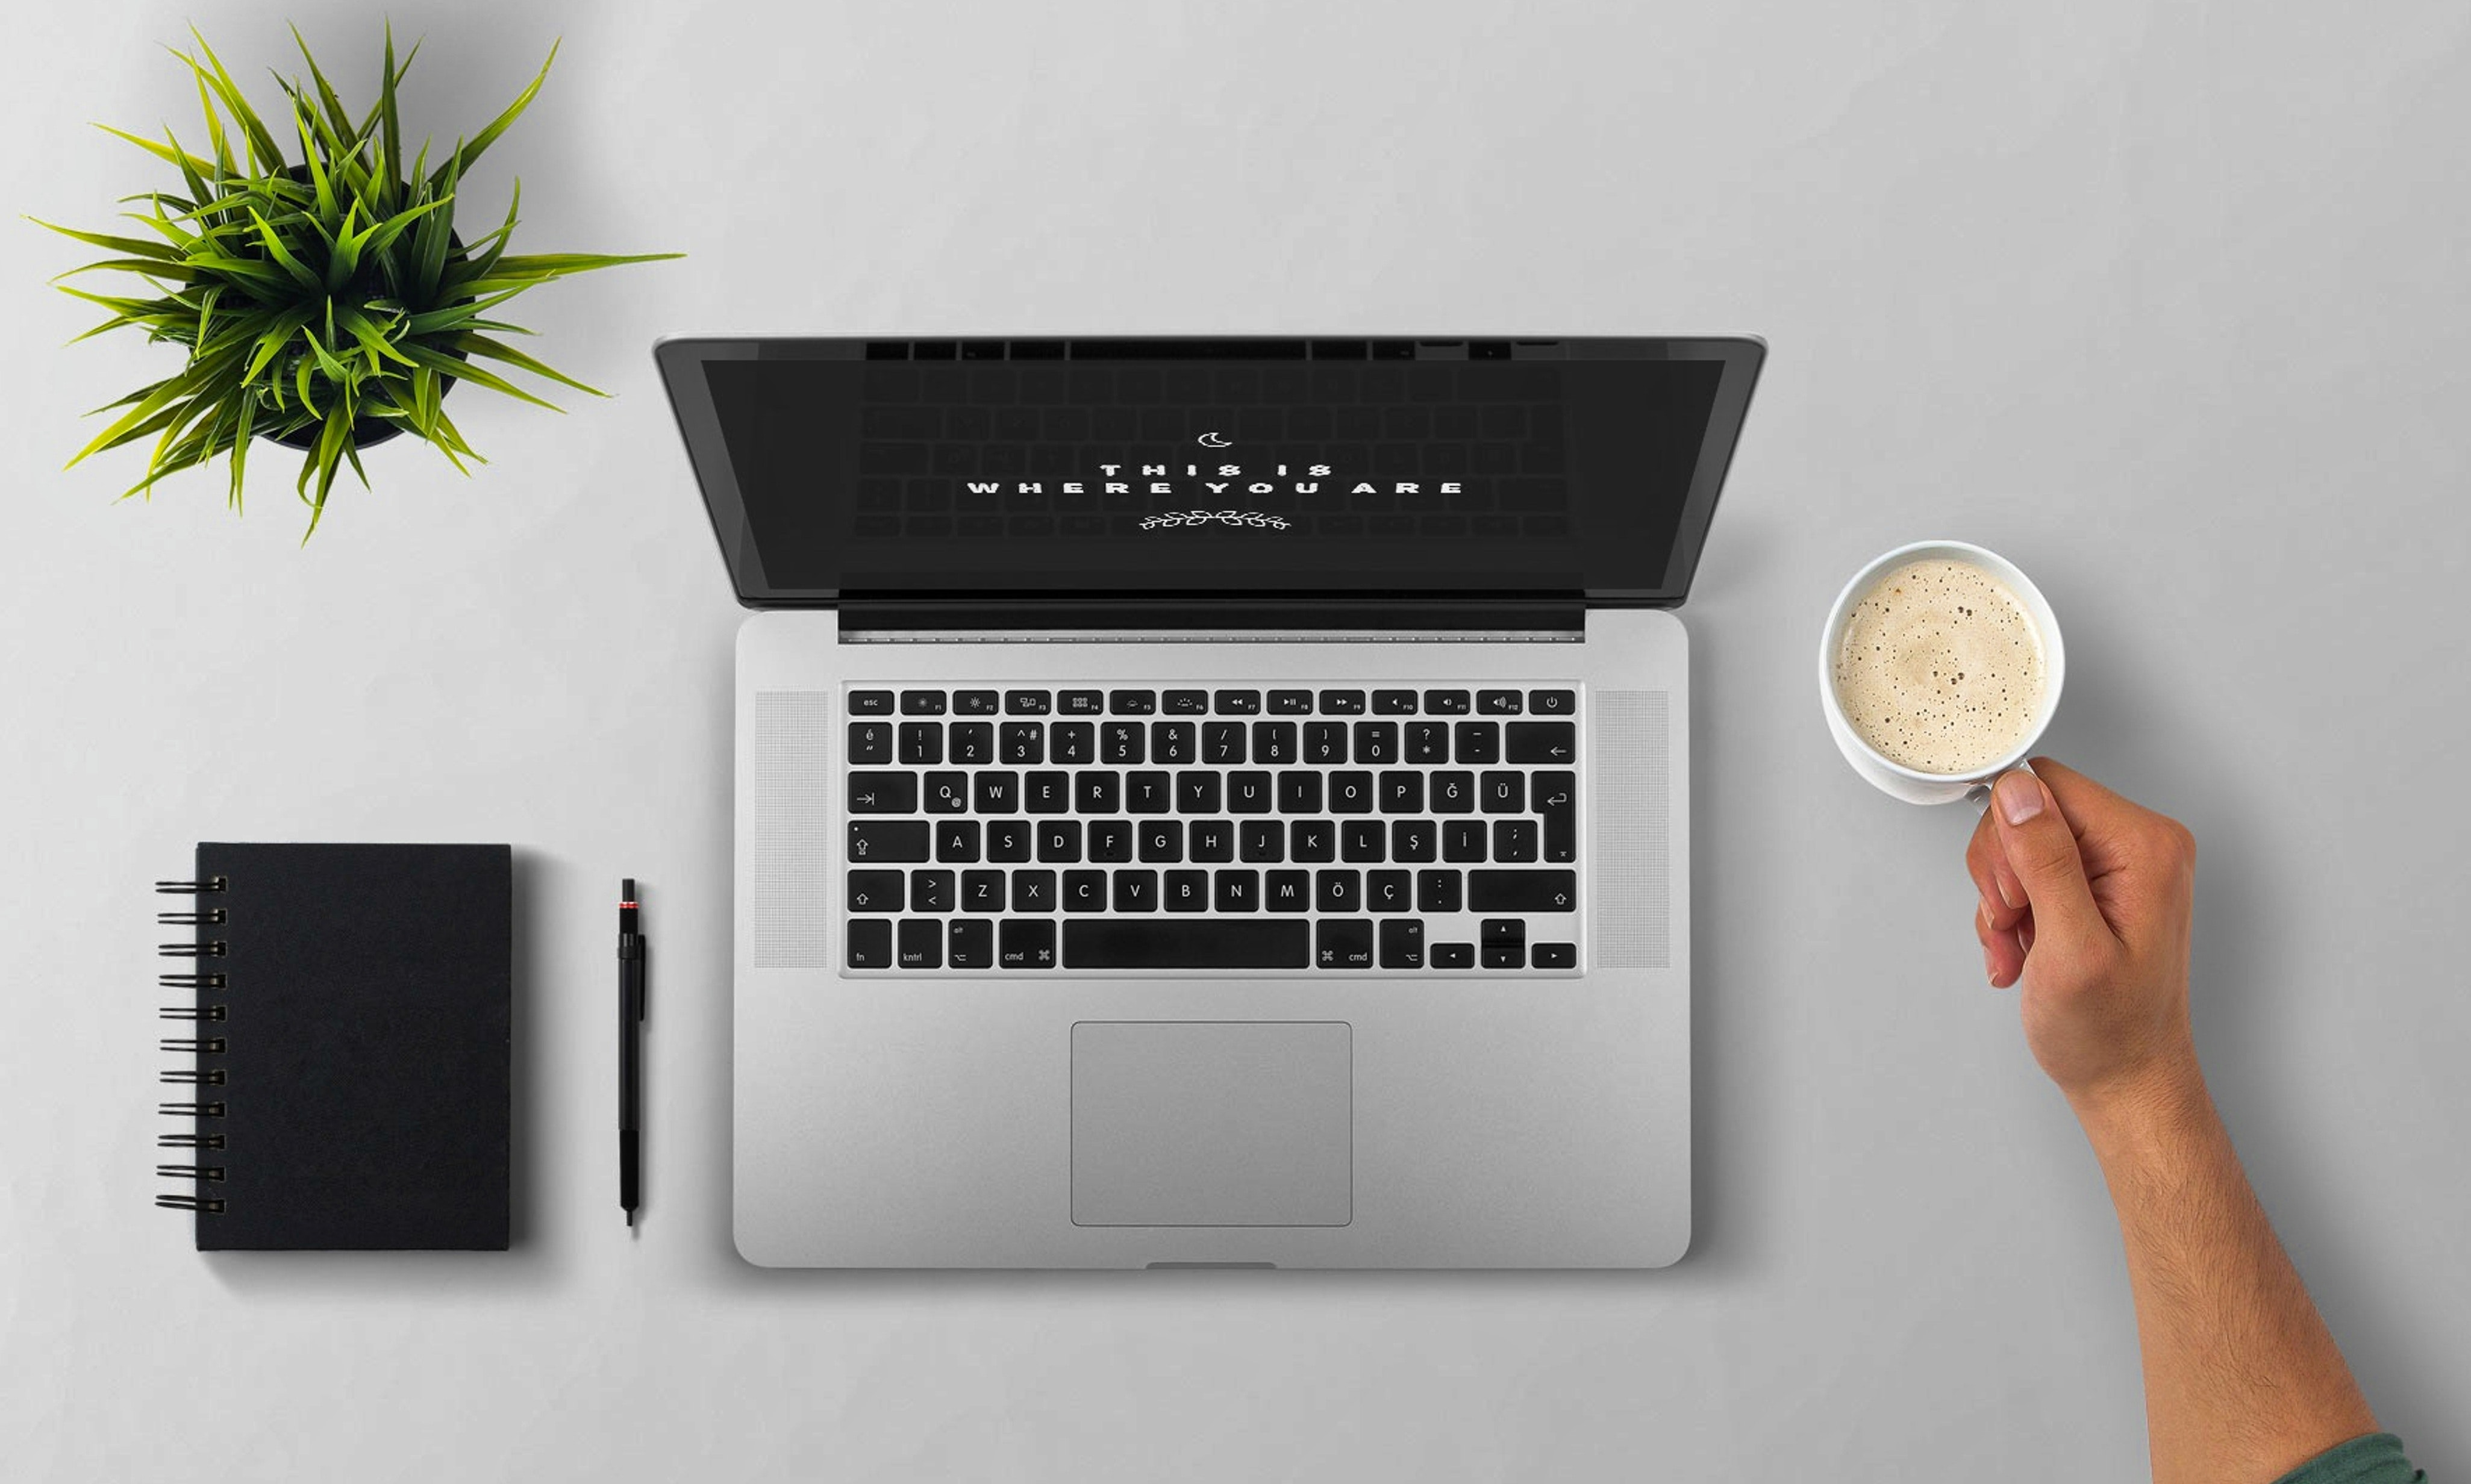 Man Using Laptop on Table Against White Background, Arm, Portable, Mug, Note pad, HQ Photo